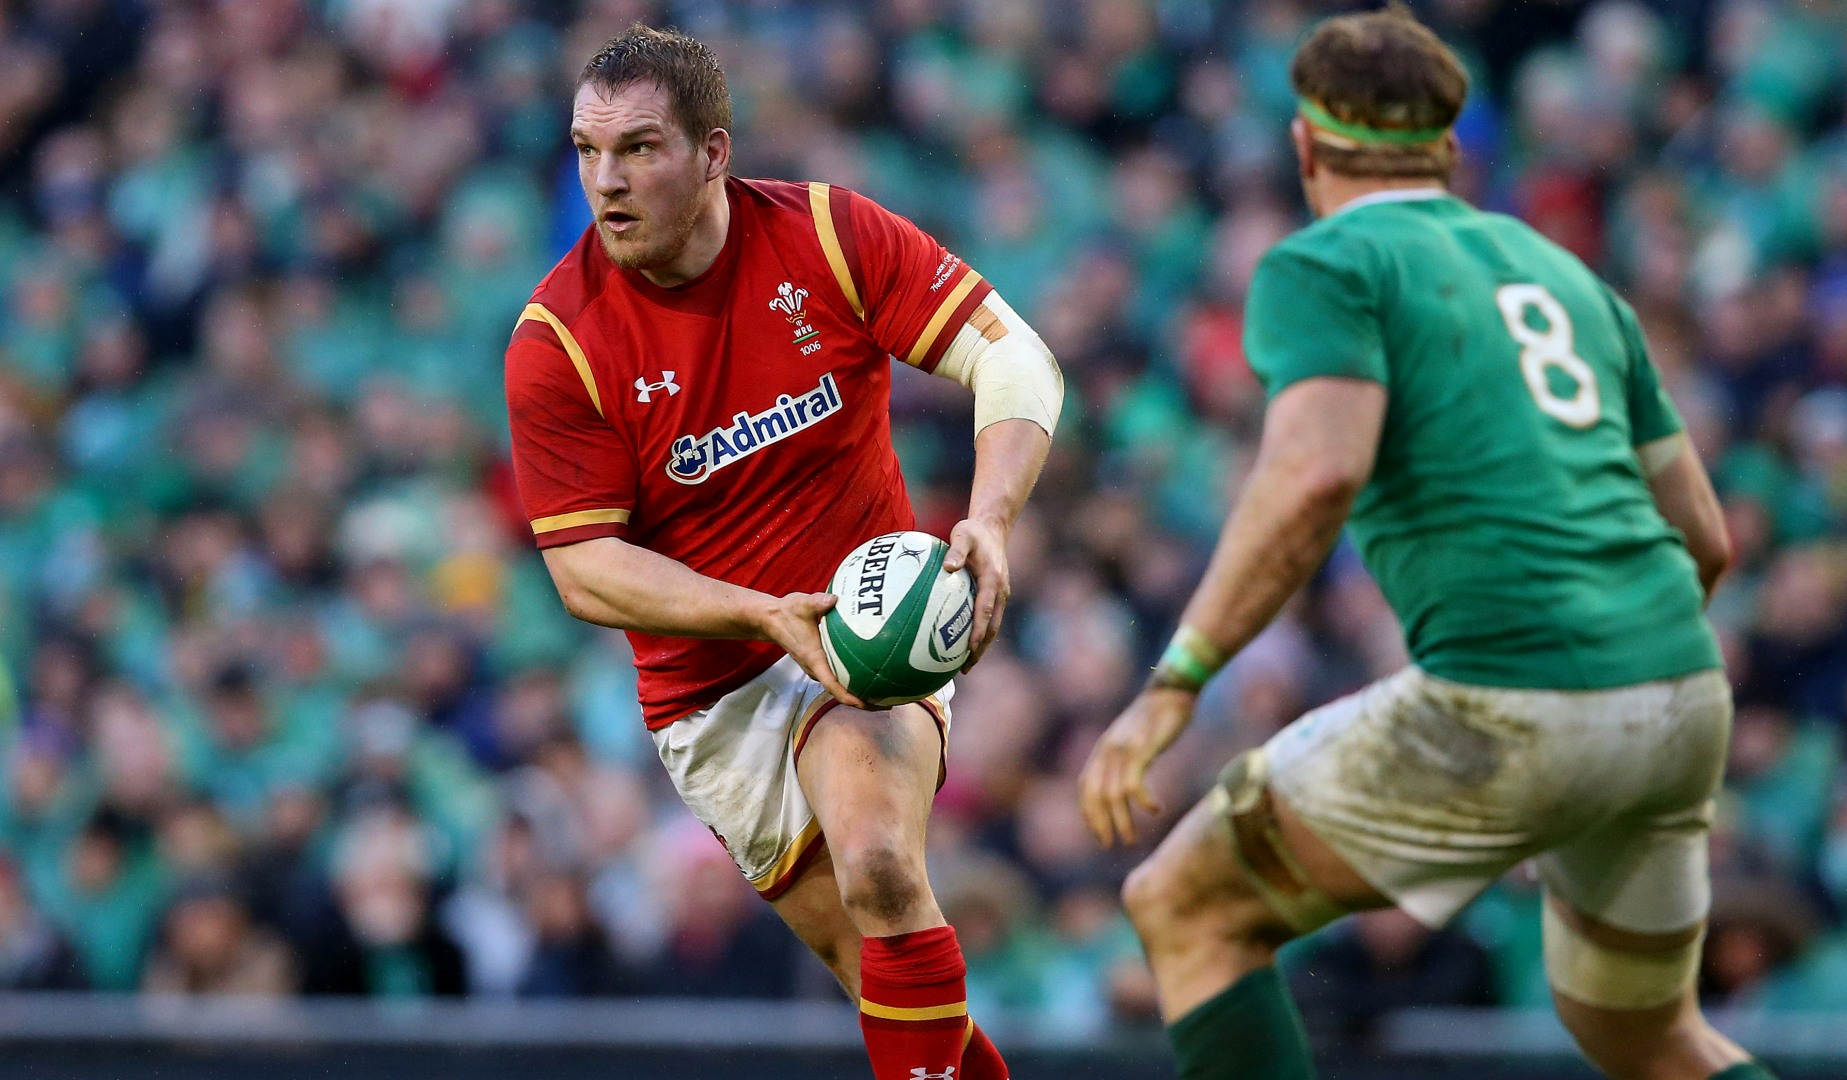 LionsWatch: Hard work pays off for Wales and Jenkins